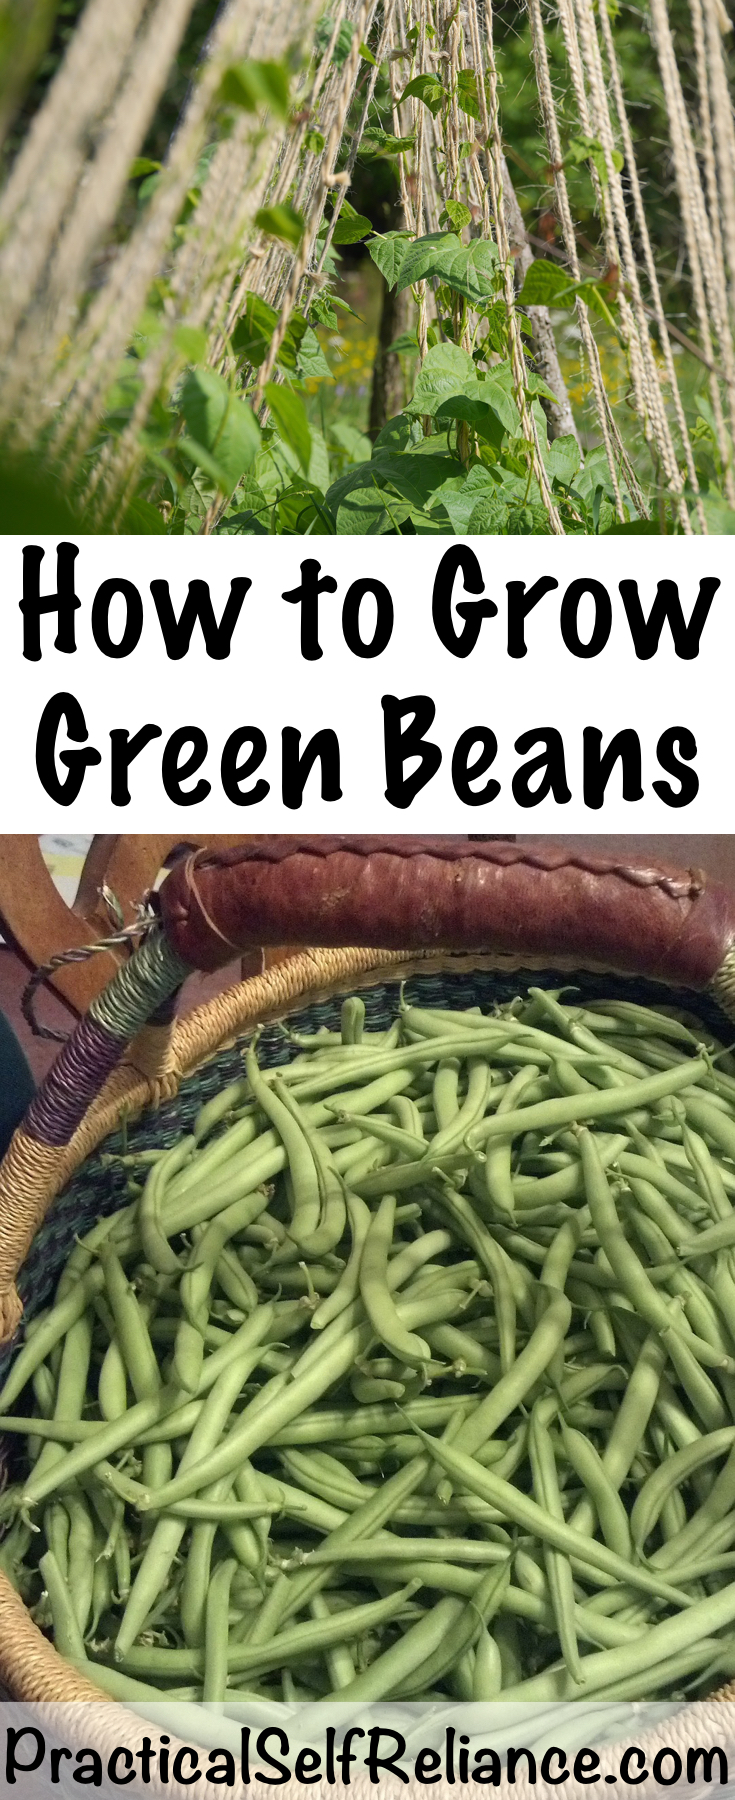 How to Grow Green Beans #greenbeans #howtogrowbeans #gardening #organicgardening #gardeningtips #homesteading